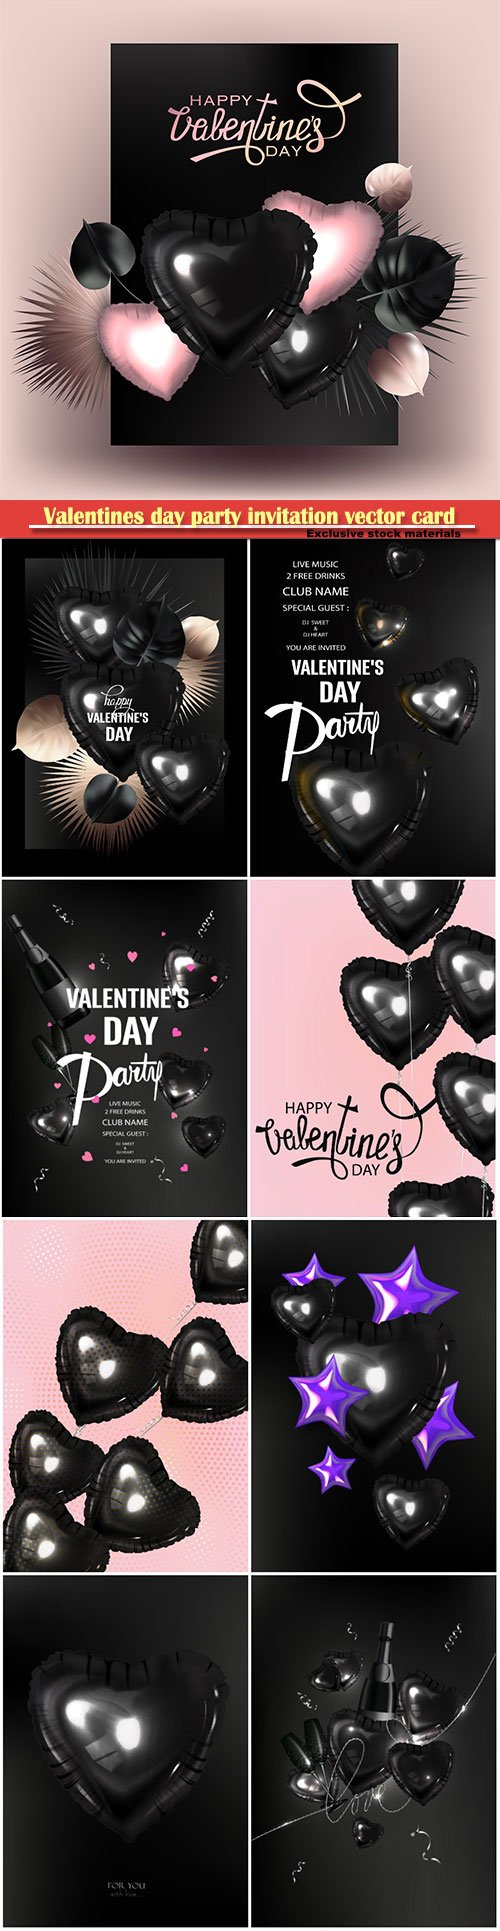 Valentines day party invitation vector card # 2